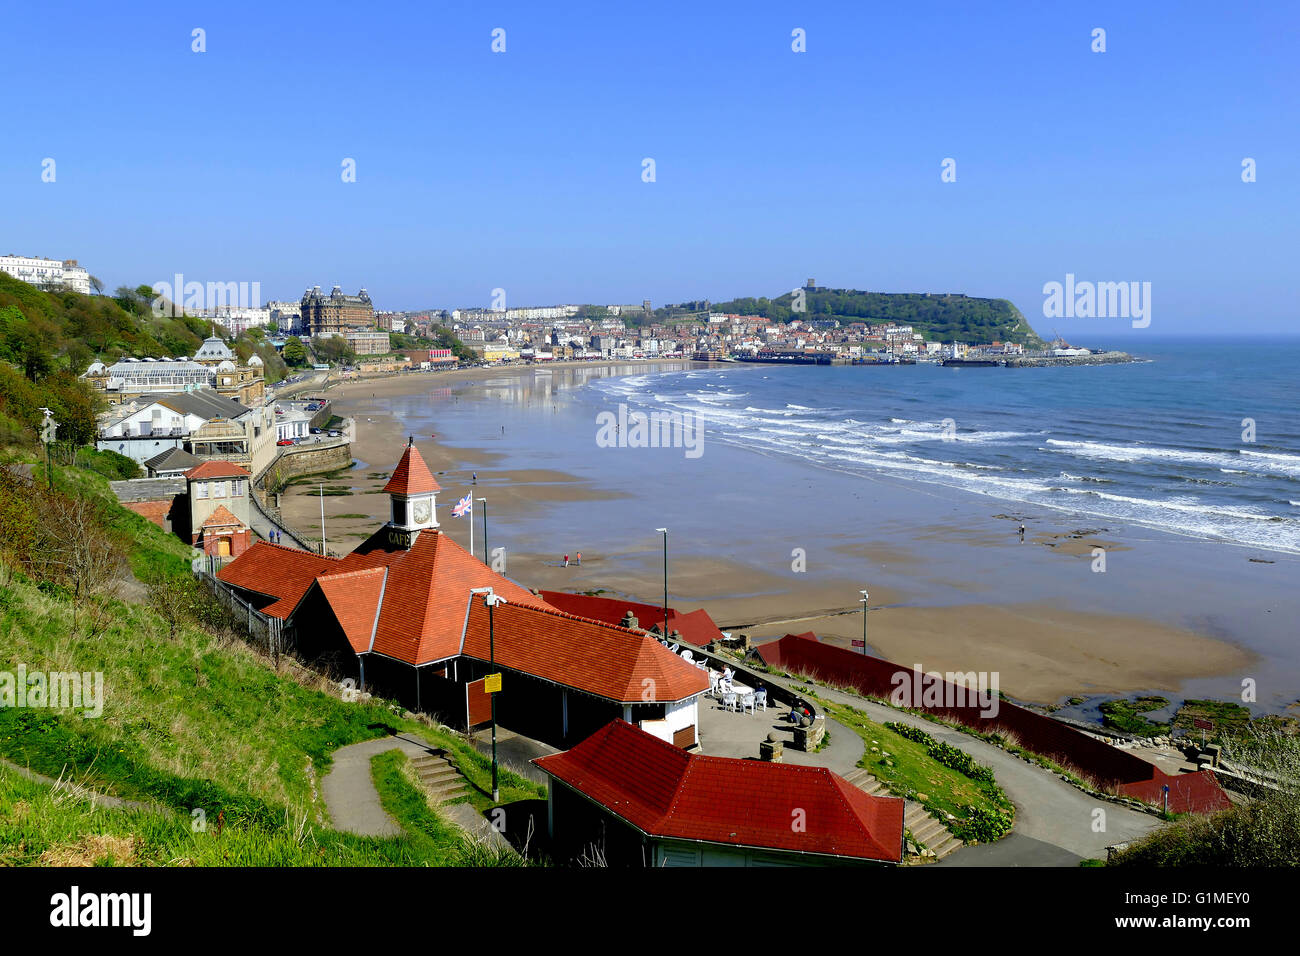 SCARBOROUGH, YORKSHIRE, UK. MAY 09, 2016. View of the Spa and bay from the South Cliff Gardens at Scarborough in - Stock Image